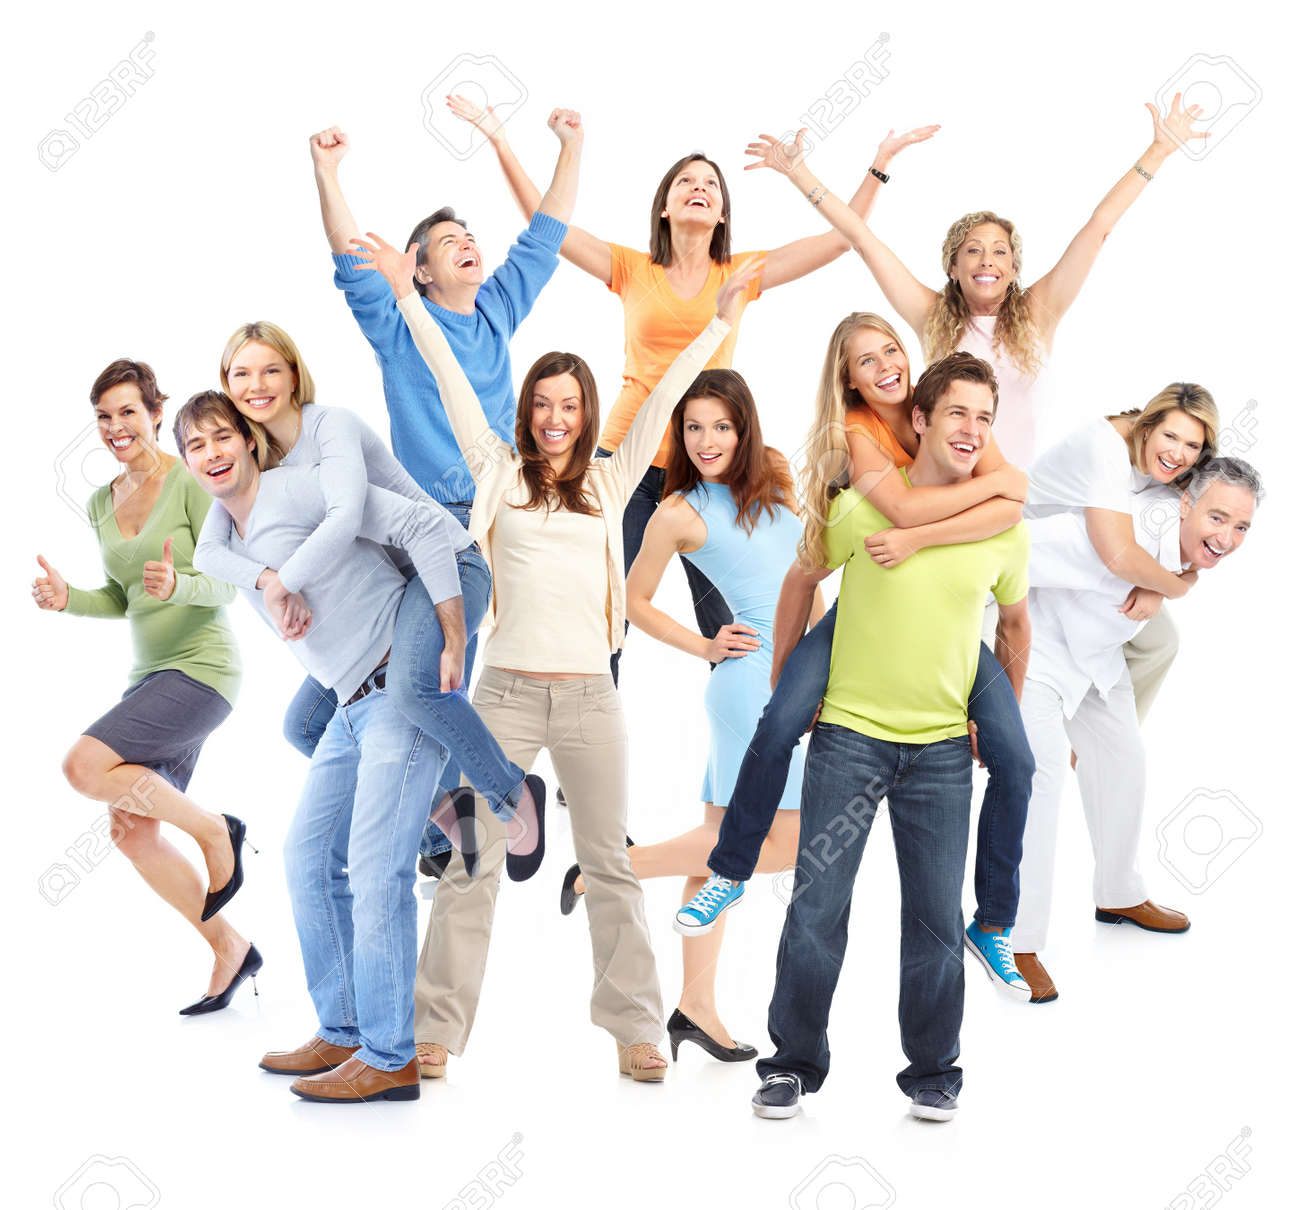 Happy funny people. Isolated over white background Stock Photo - 8592064